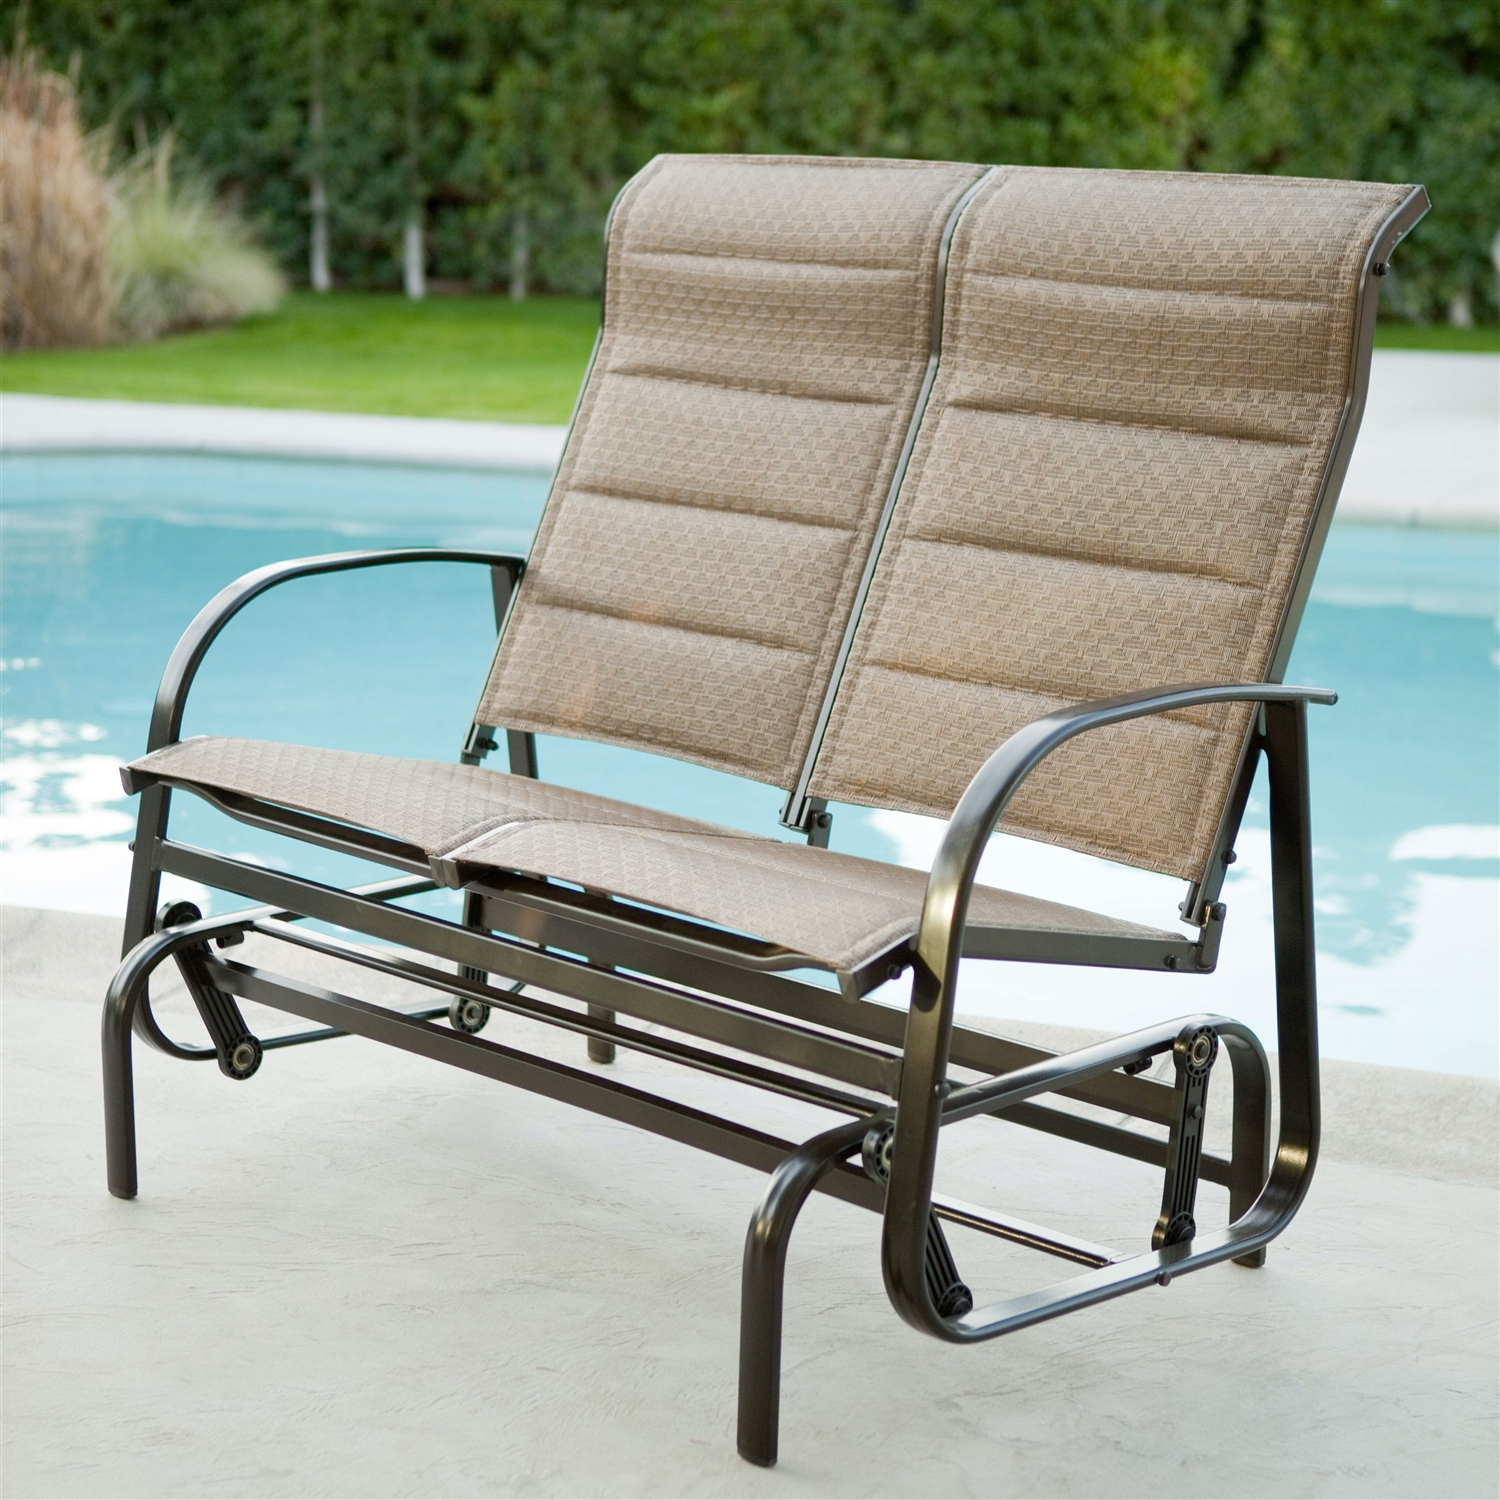 Looking For Chairs Weatherproof Outdoor Loveseat Glider Chair With Padded